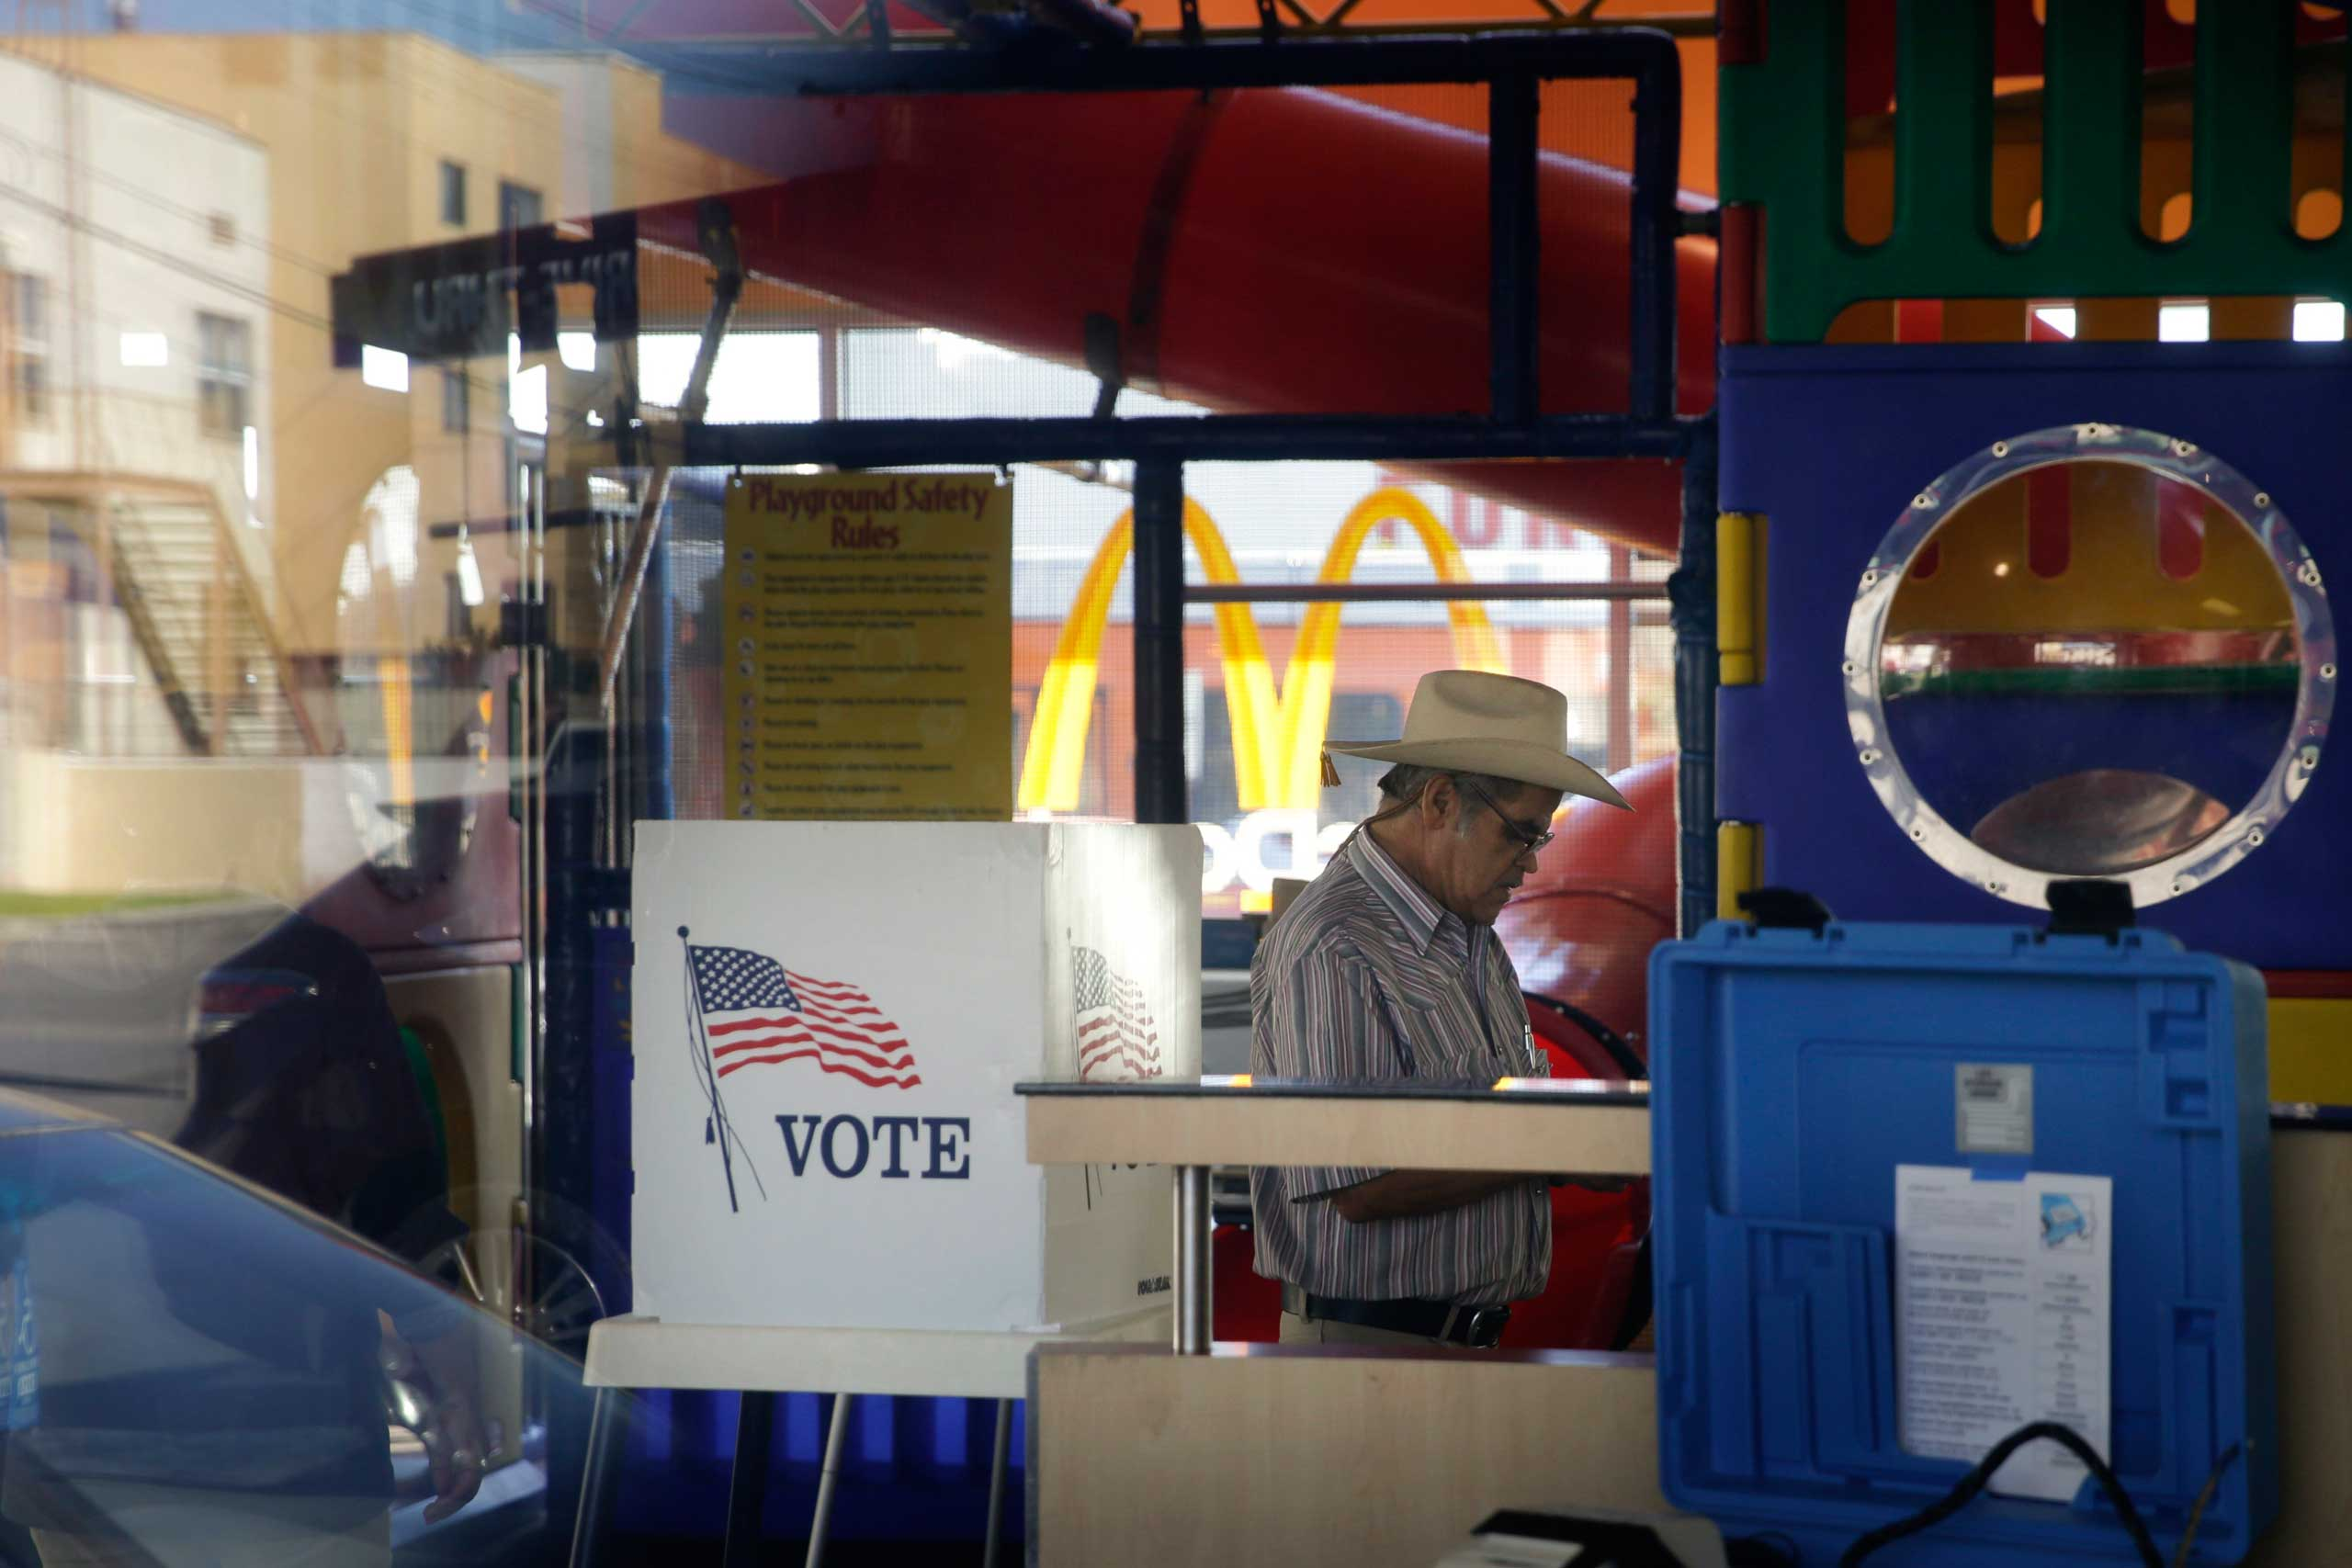 Salvador Ponce, 73, leaves after casting his ballot at a polling place set up in the playground of a McDonald's restaurant in Los Angeles on Nov. 4, 2014.